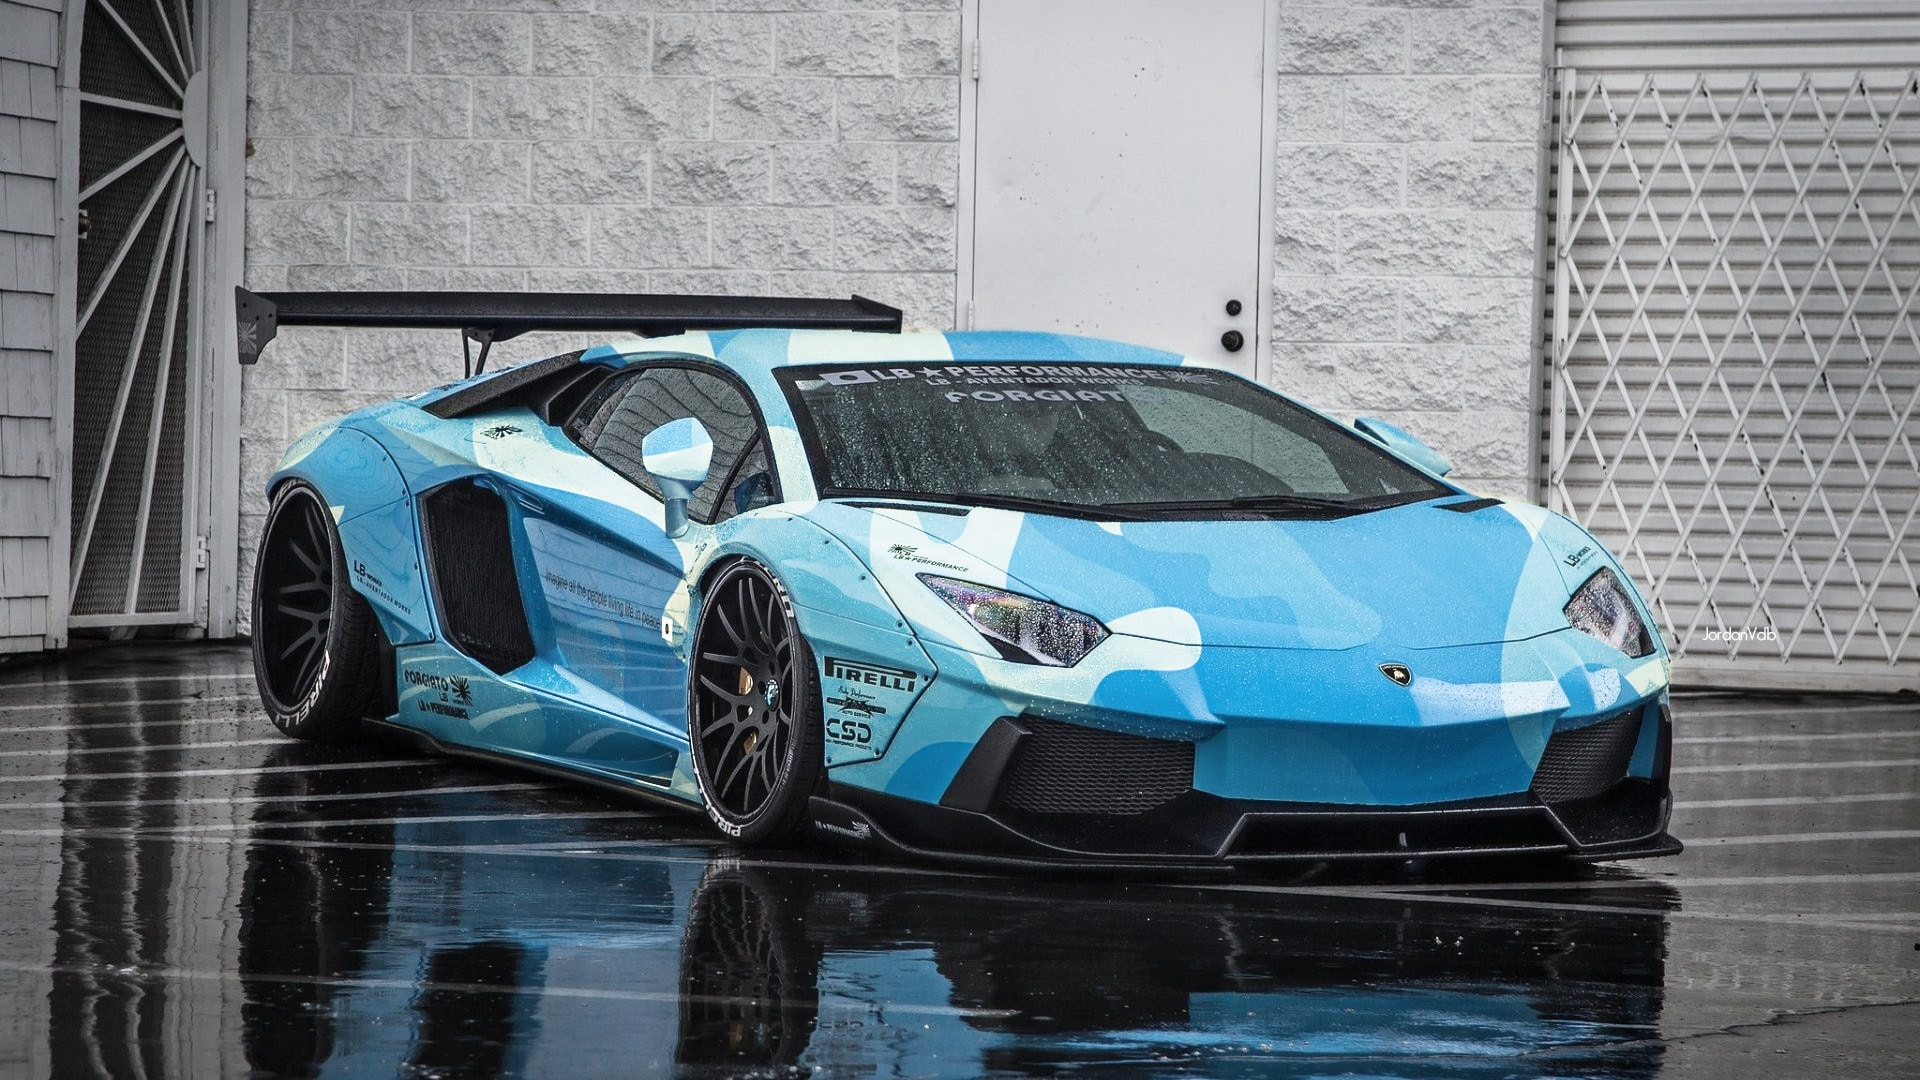 Wallpaper Vehicles Lamborghini Aventador Blue Supercar Ubackground Com